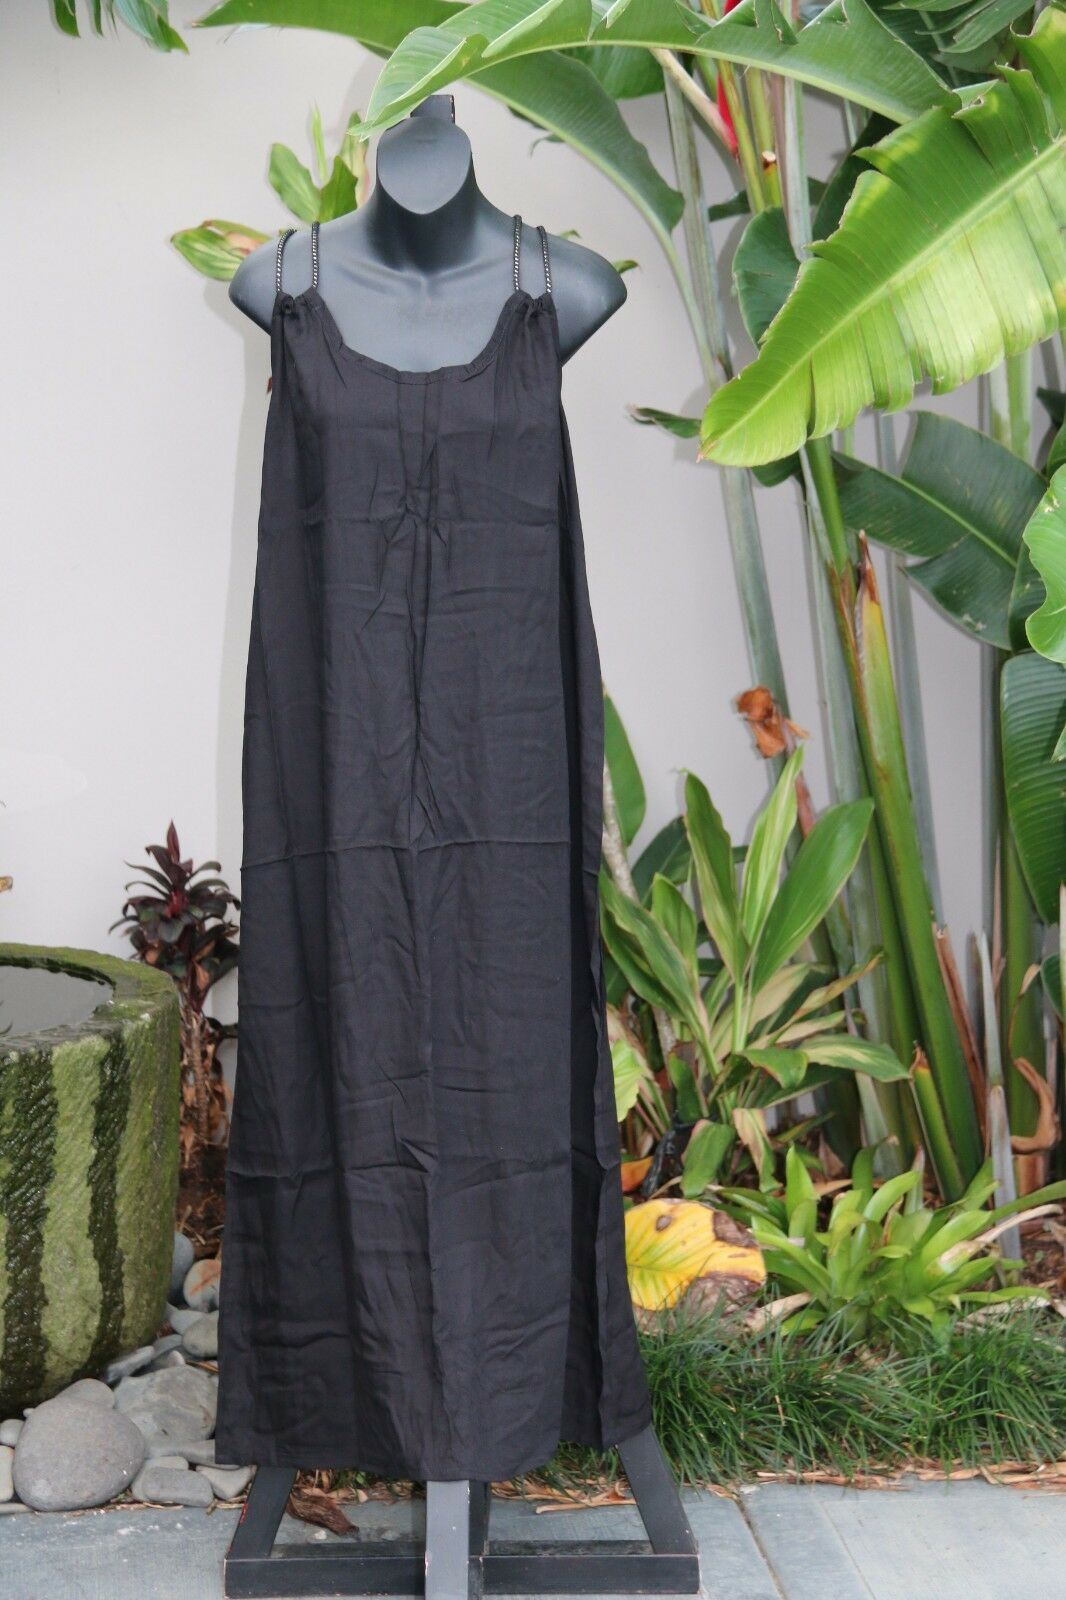 NEW Ladies Cotton Bali Maxi Dress / One Size / Cool Summer Casual Dress